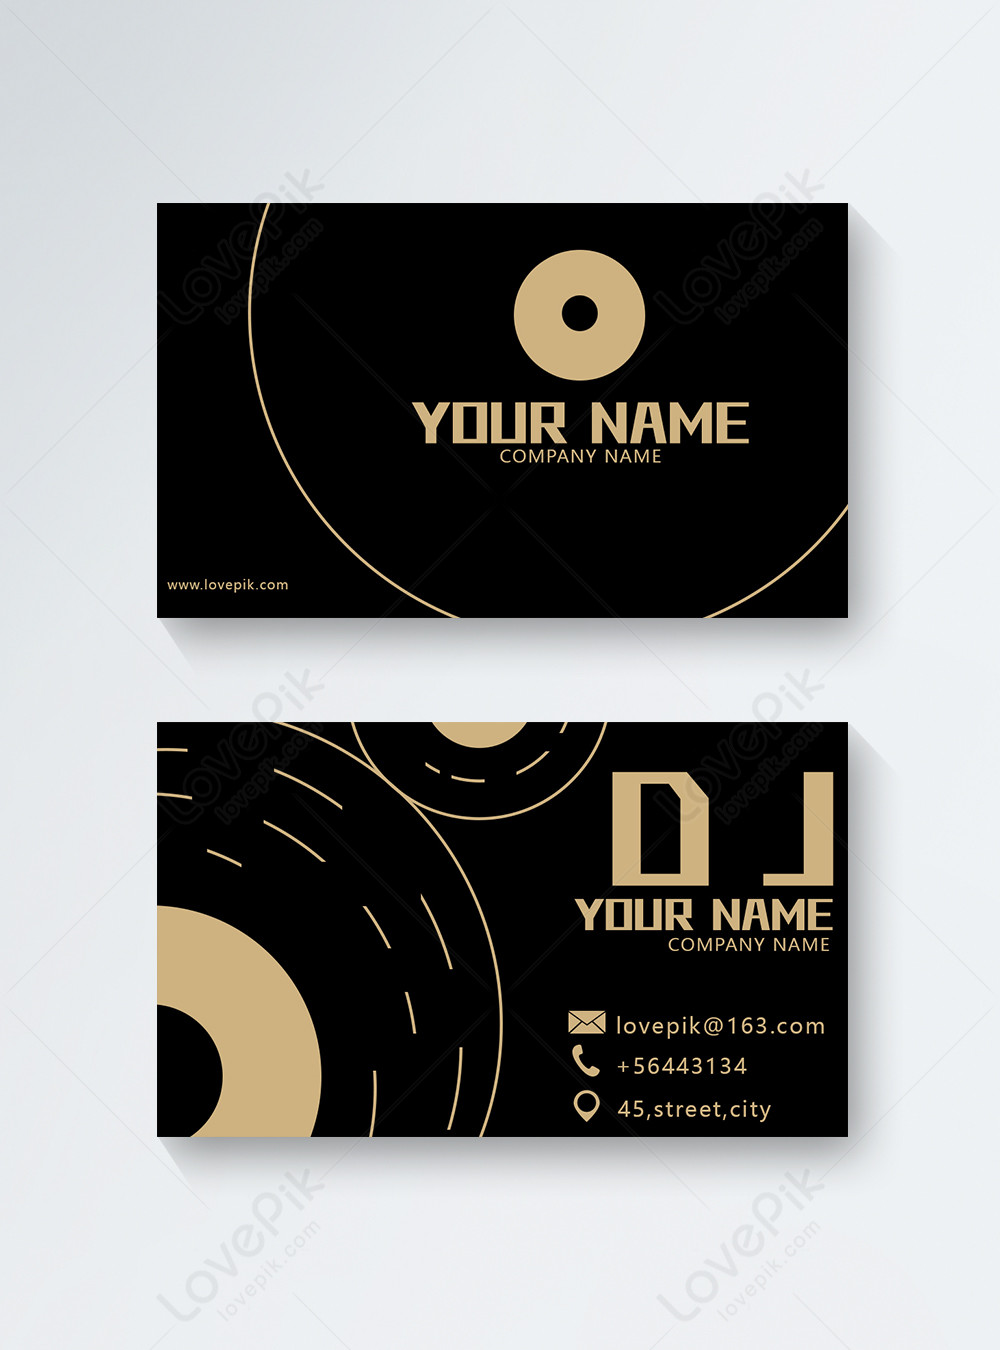 Dj Business Cards Template Image Picture Free Download 450000210 Lovepik Com